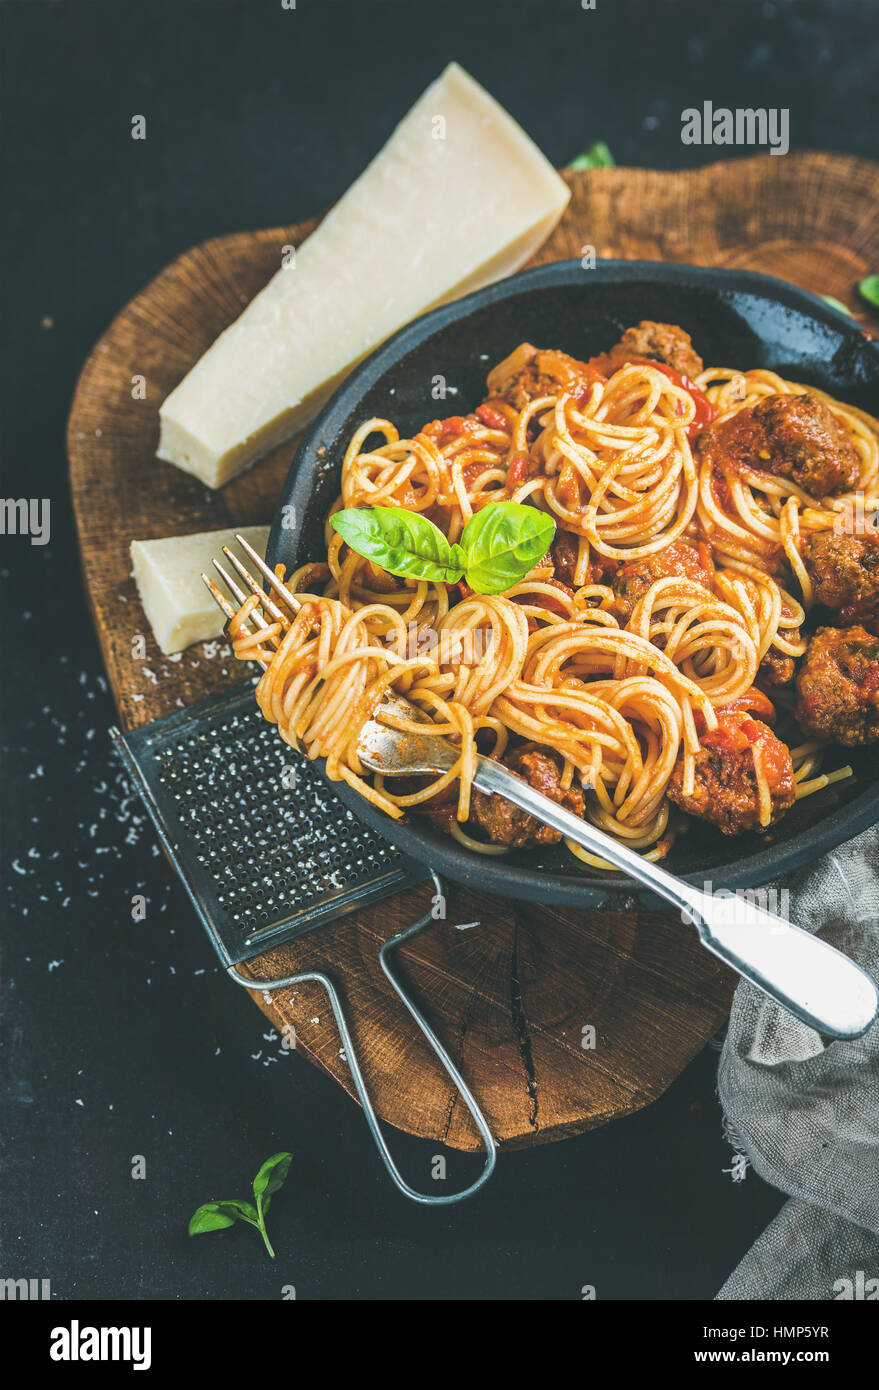 Italian dinner with meatballas, basil and parmesan cheese pasta - Stock Image